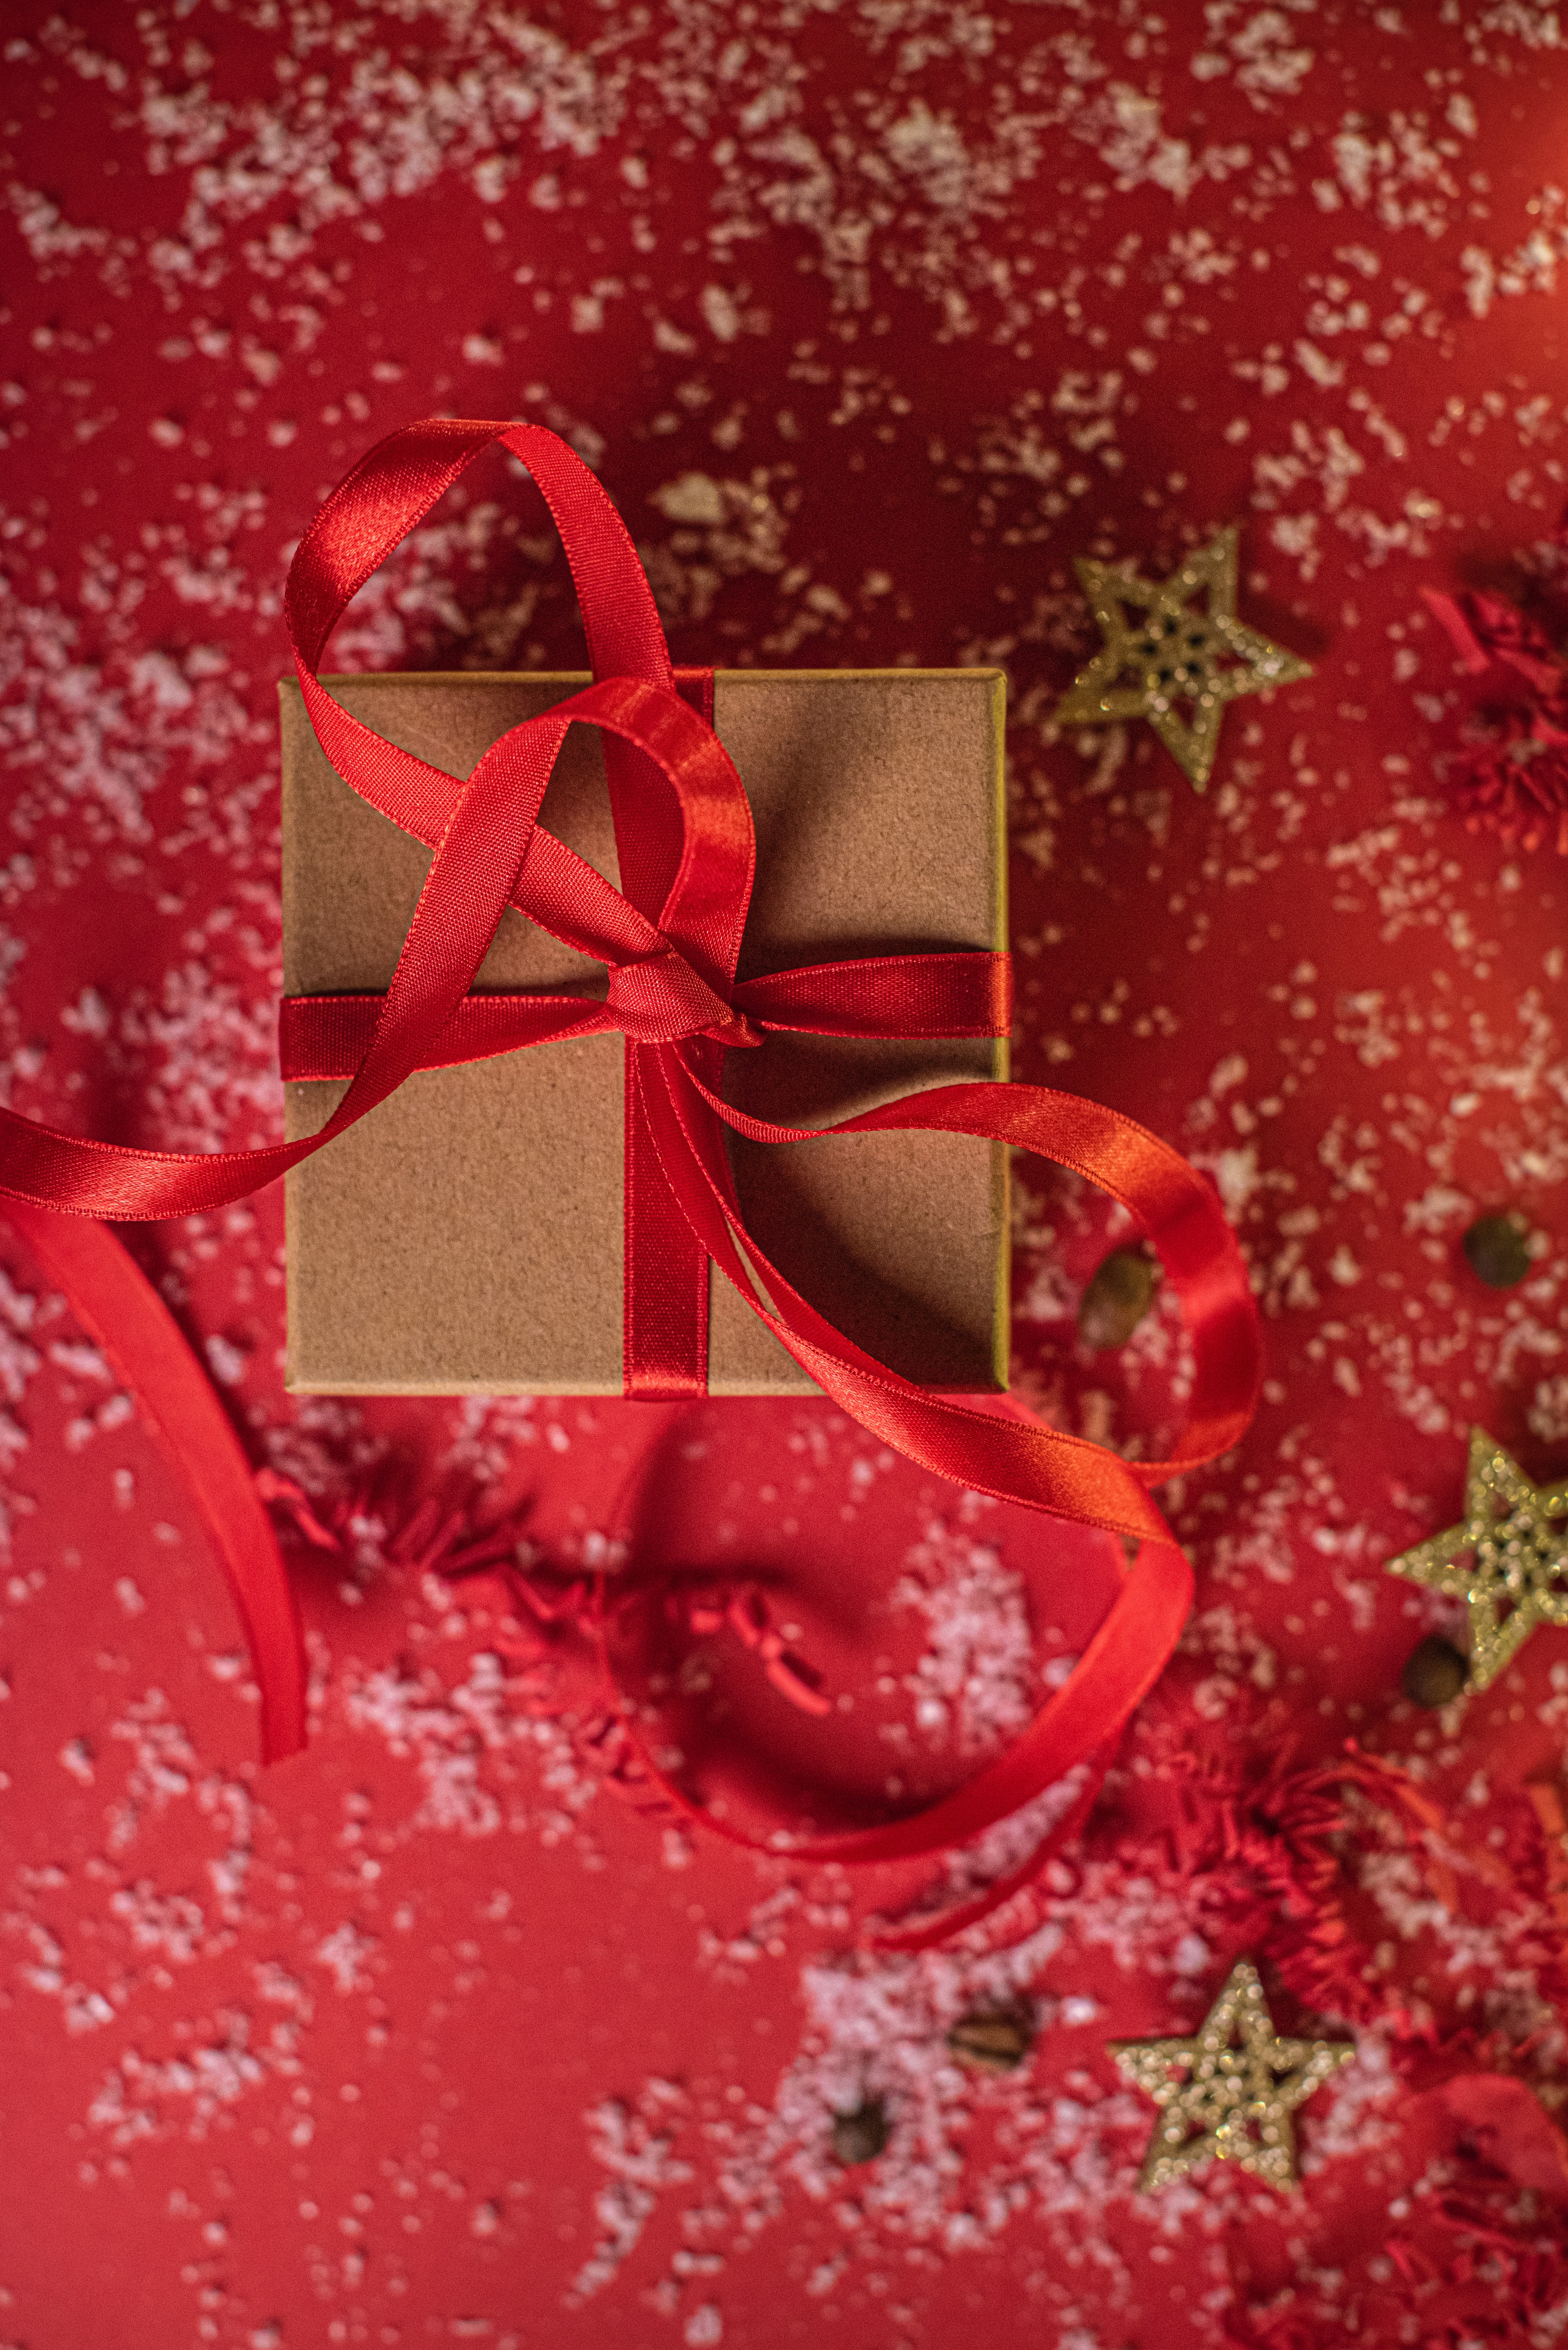 115680 download wallpaper Holidays, Box, Tape, Present, Gift, New Year, Christmas screensavers and pictures for free